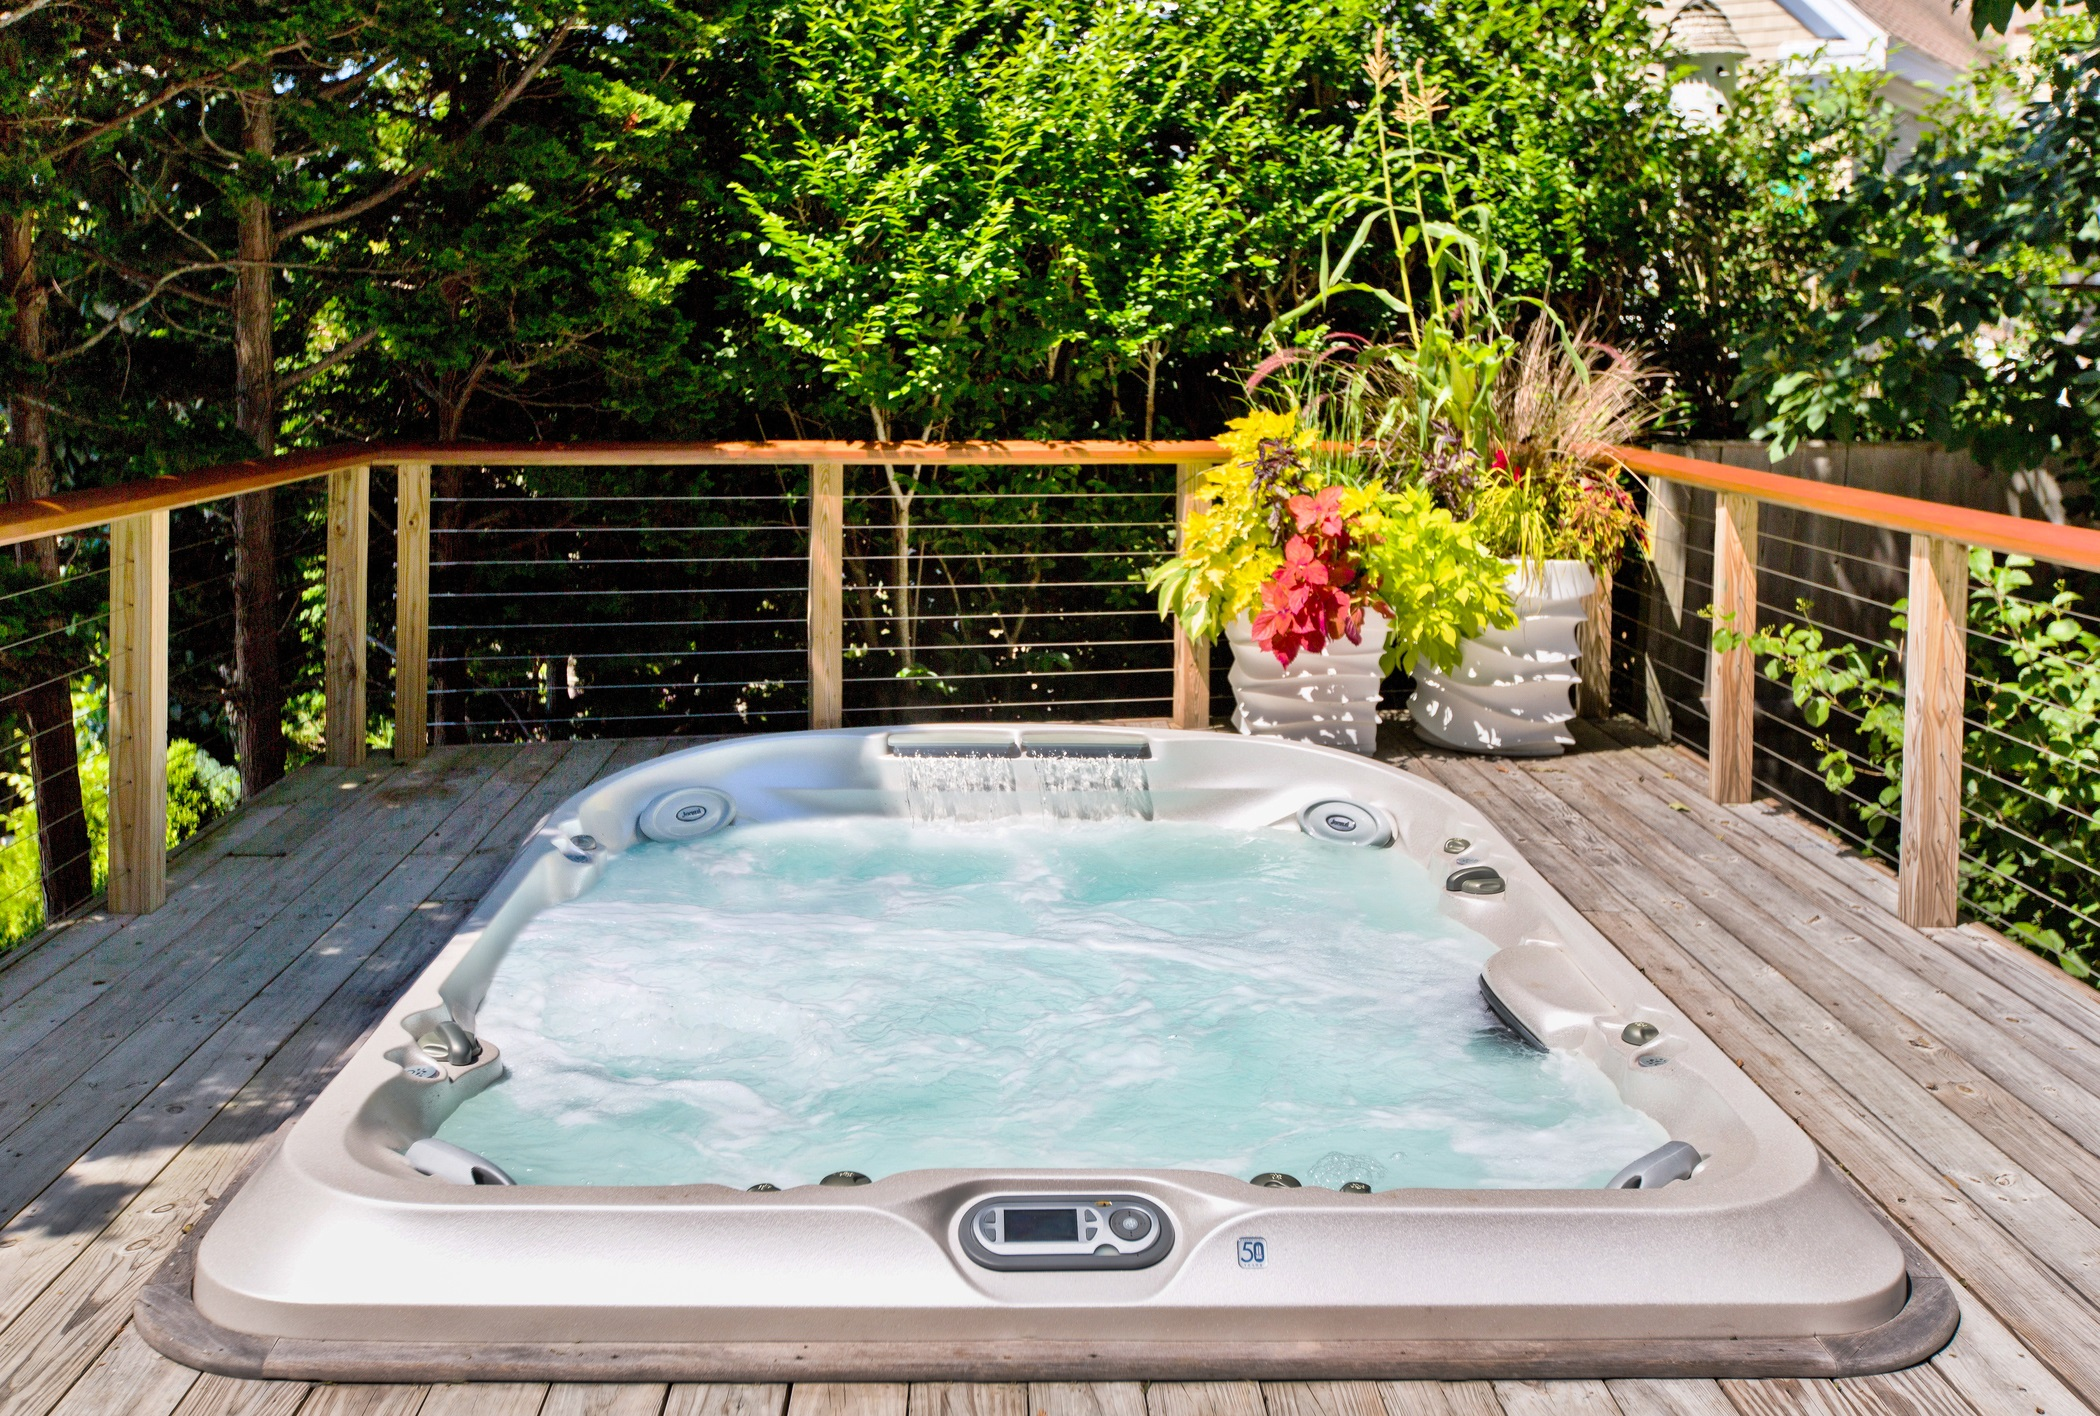 Jacuzzi Pool Hot Tub Jacuzzi Hot Tubs And Spas Cape Cod Aquatics